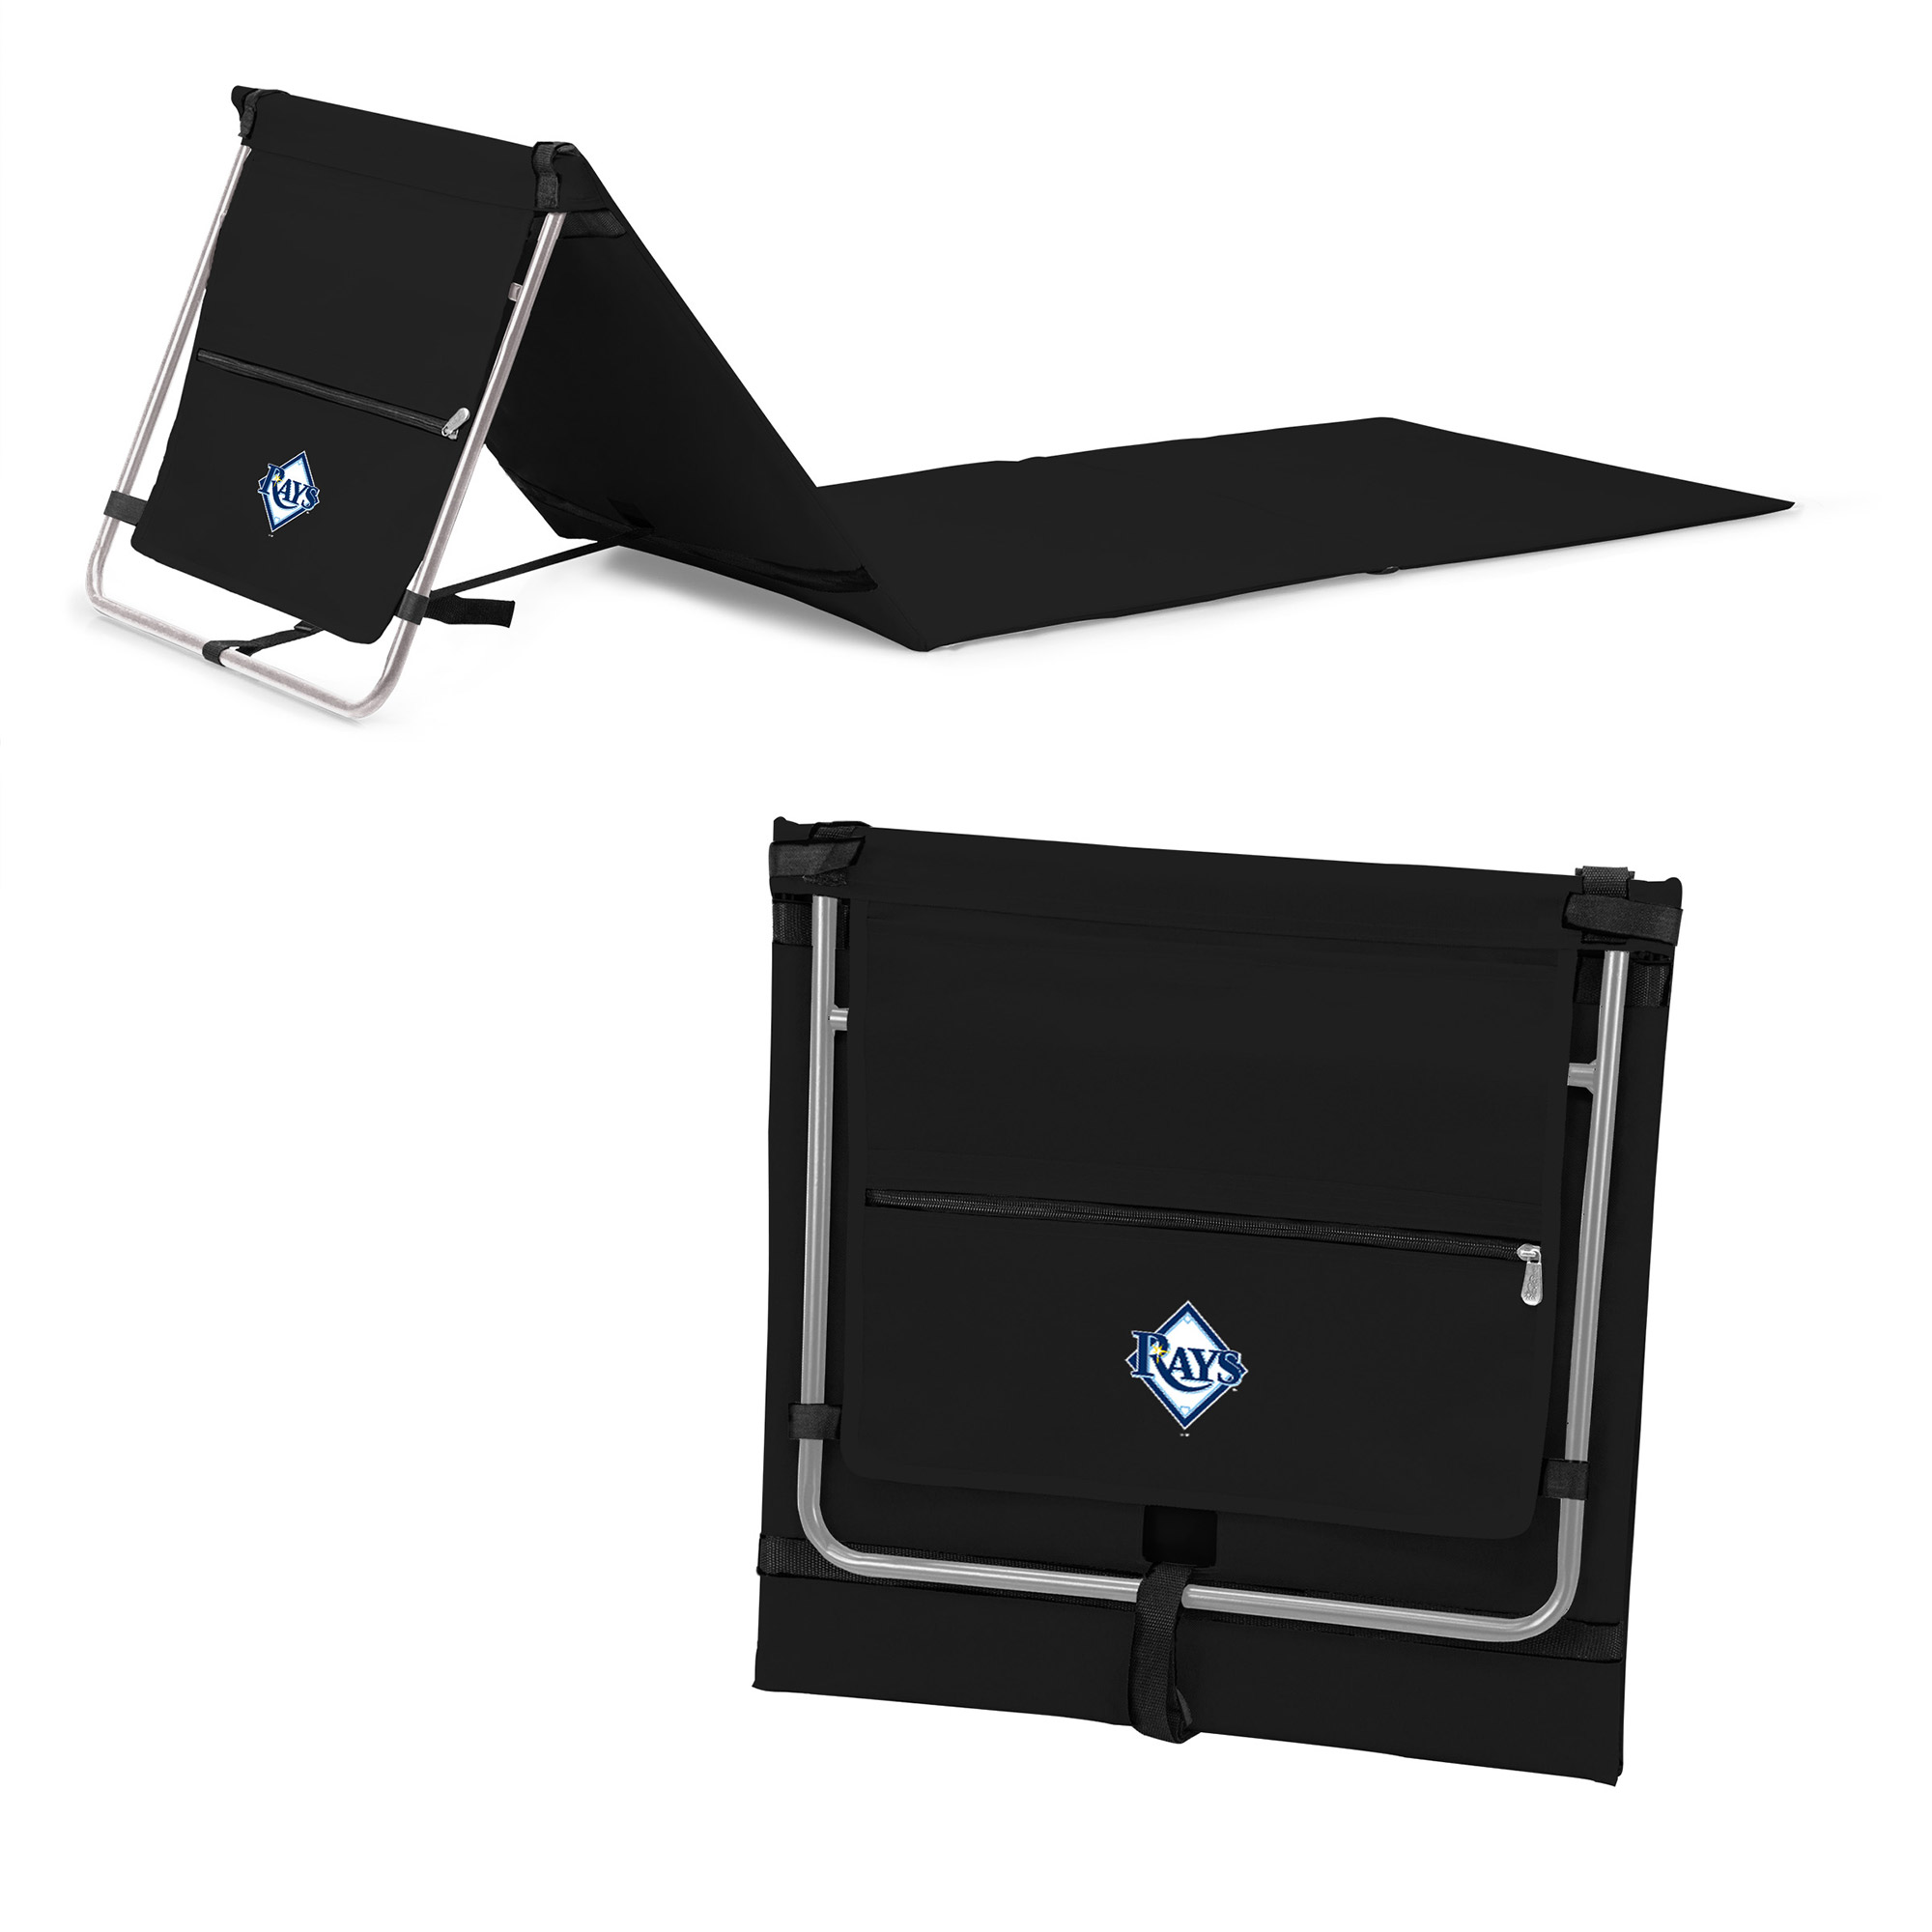 Tampa Bay Rays Portable Lounger Beach Mat - Black - No Size